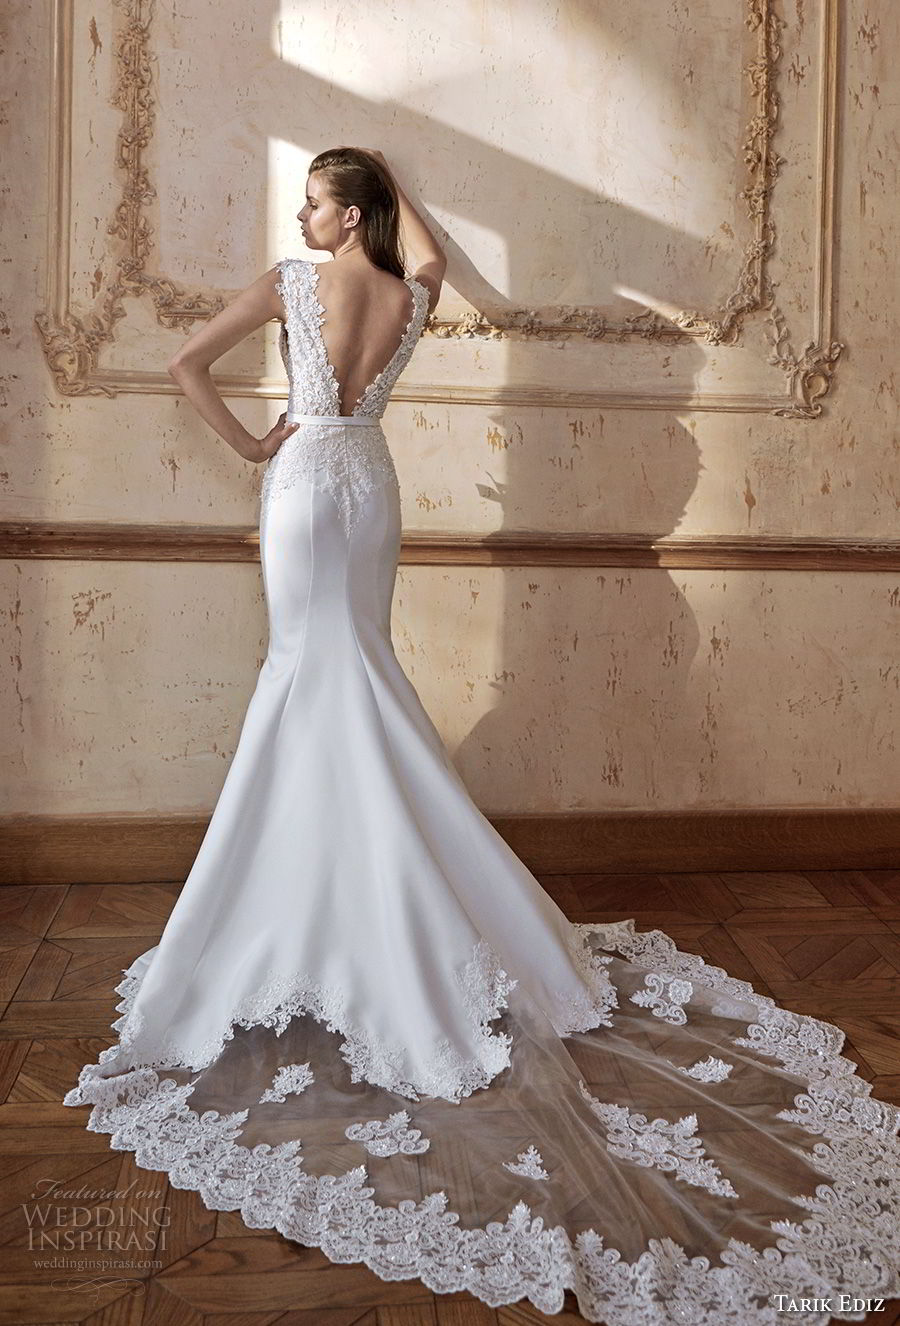 Tarik Ediz wedding dress with open back